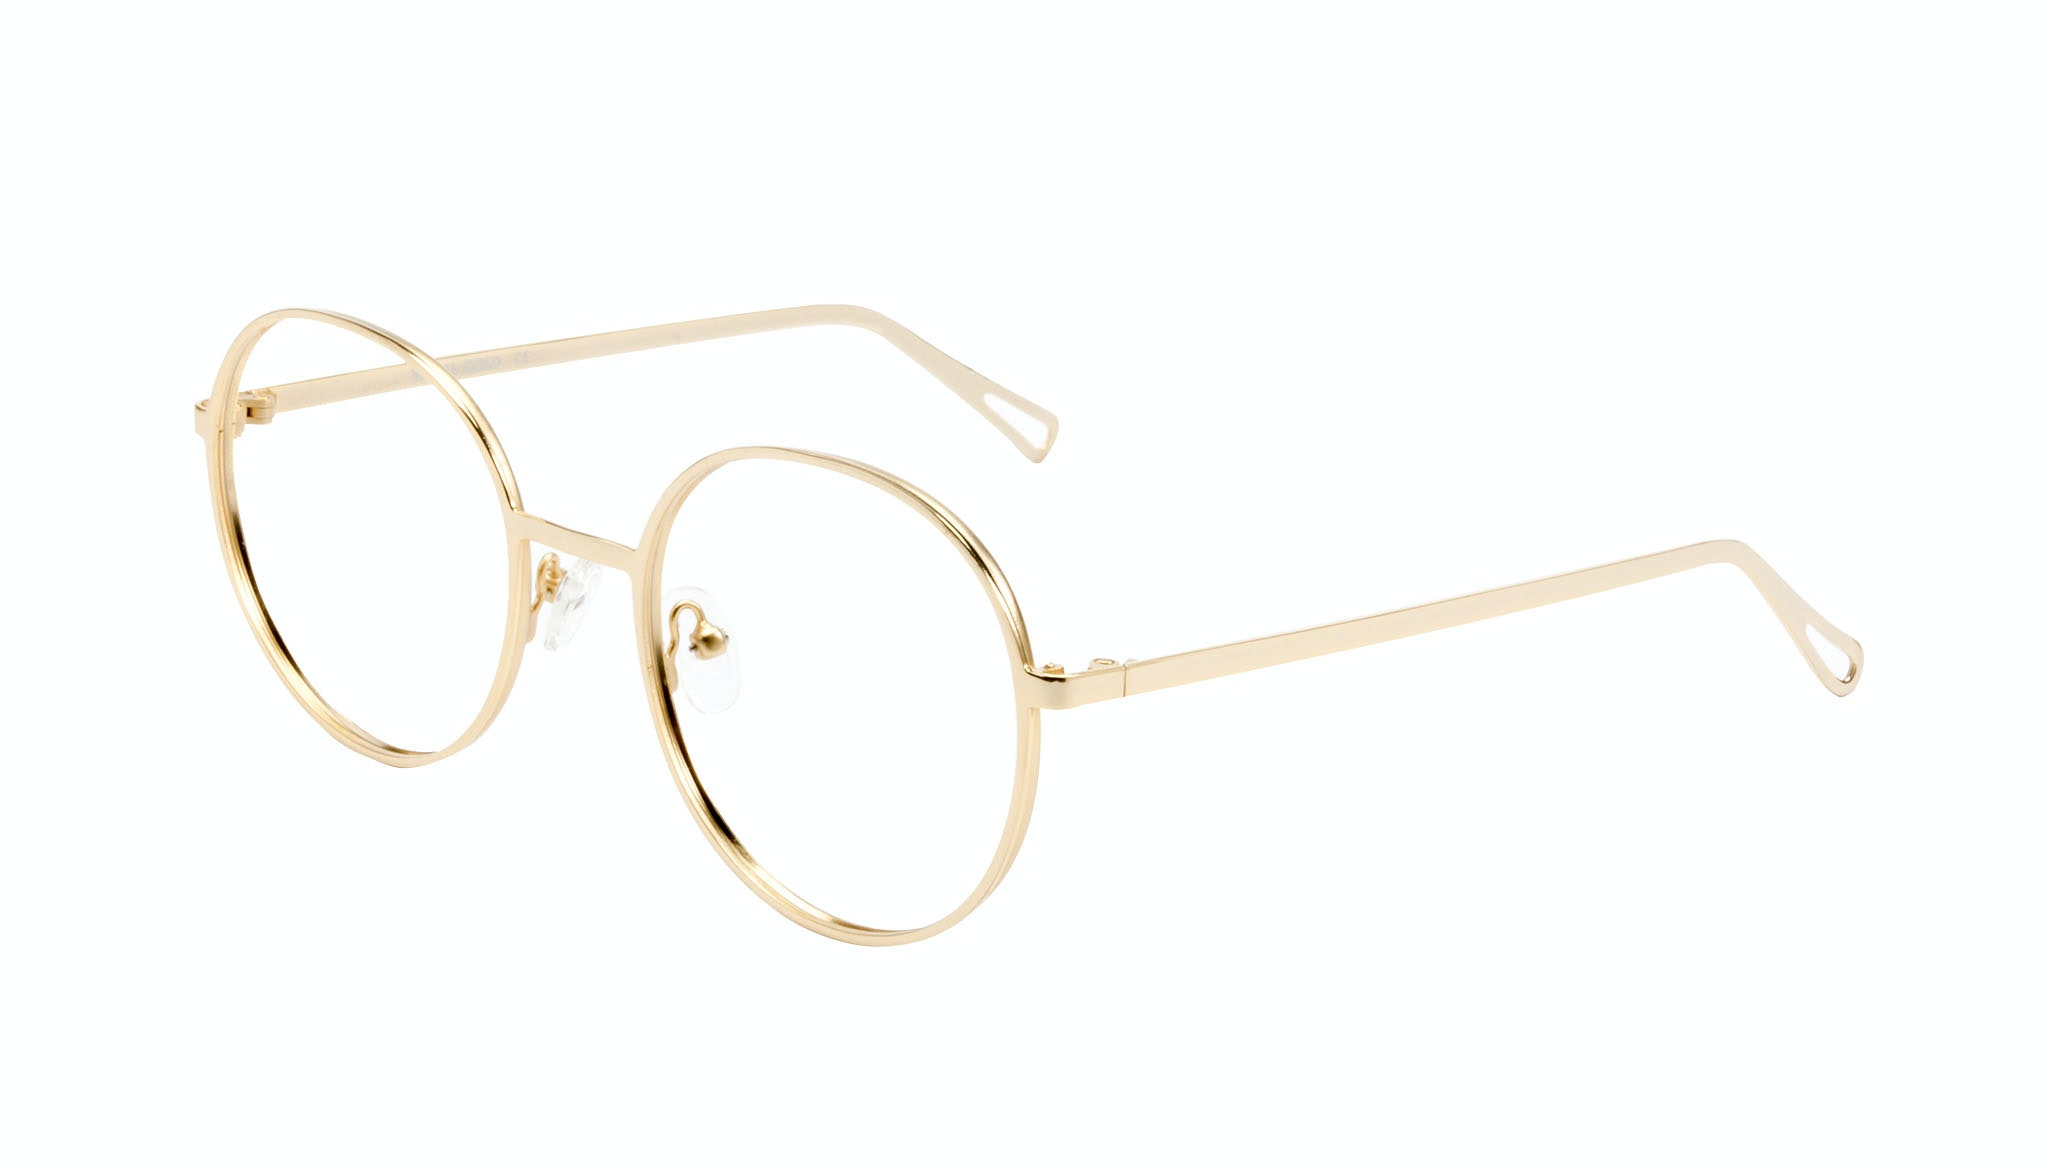 Affordable Fashion Glasses Round Eyeglasses Men Varna Gold Tilt